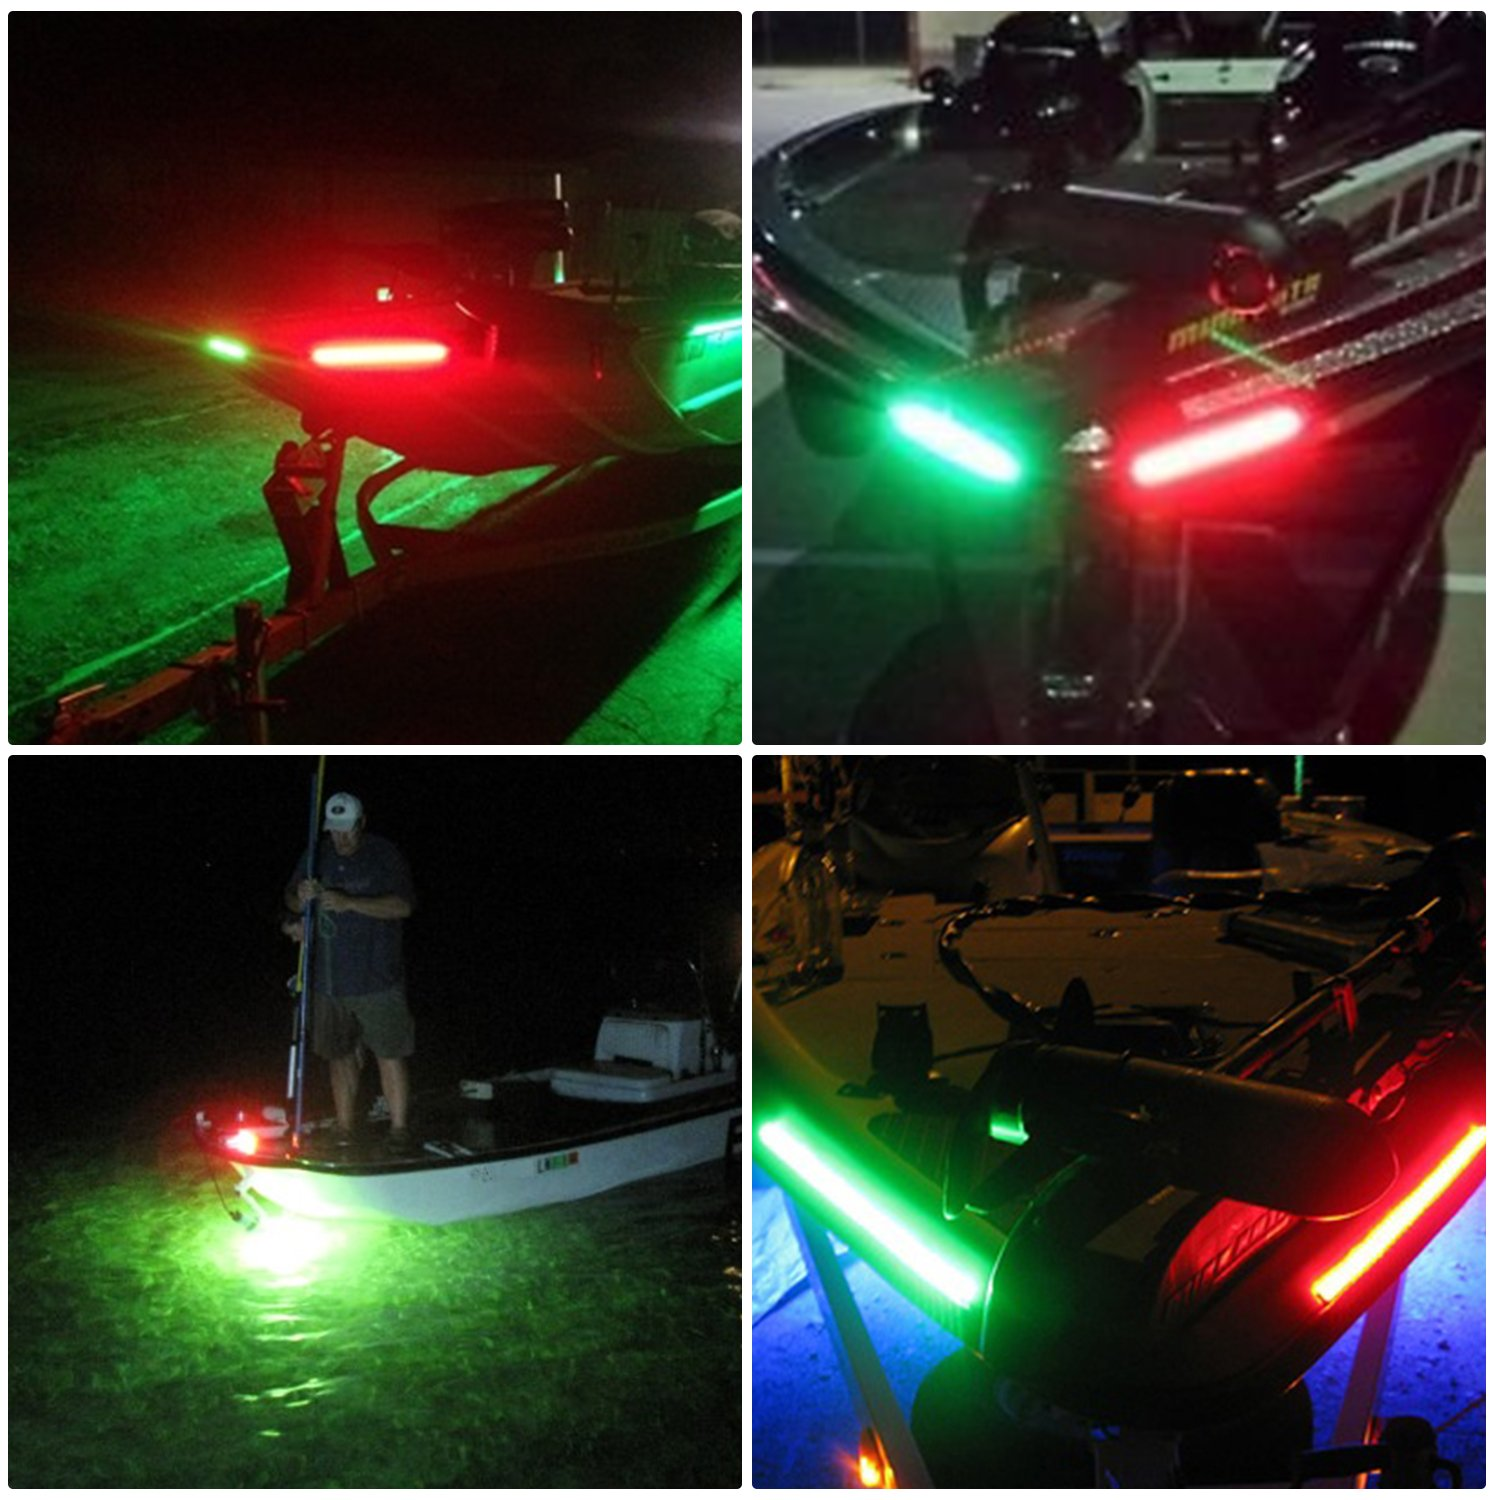 LEANINGTECH One Pair Marine Boat Yacht Light 12V Stainless Steel LED Bow Navigation Lights Pontoons Sailing Signal Lights,Teardrop Bow Lights Waterproof Red and Green